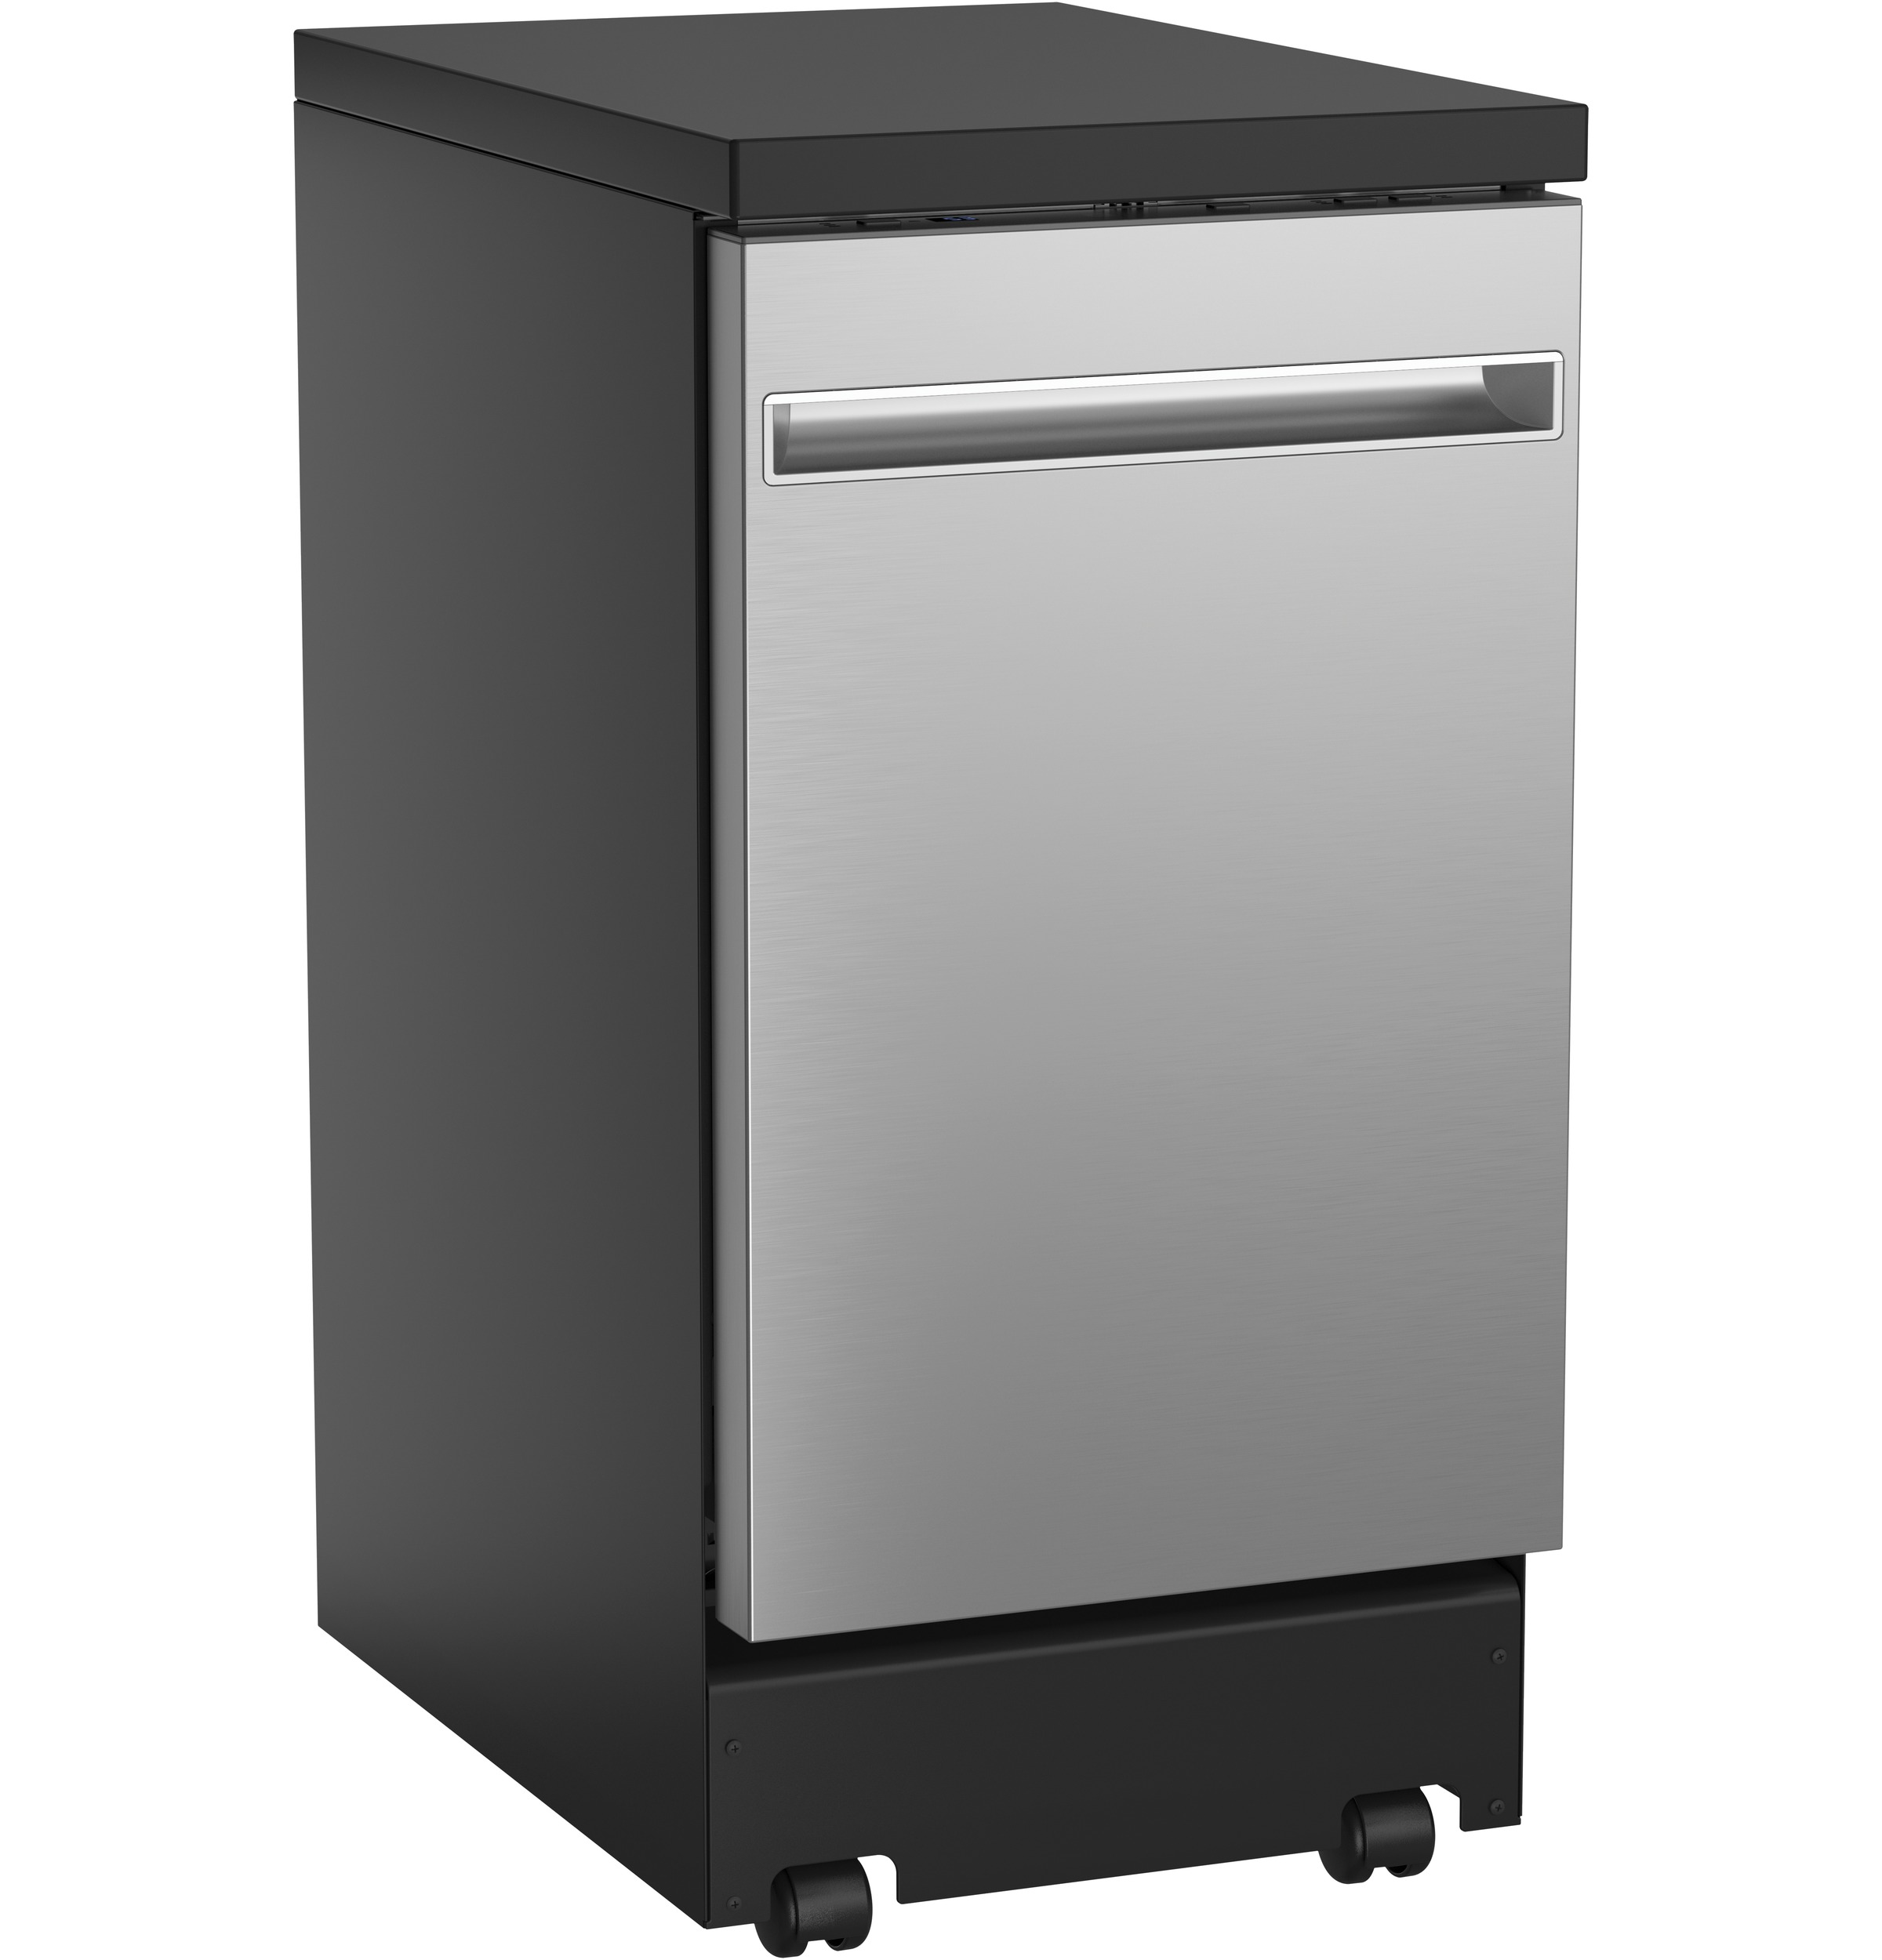 "GE GE® 18"" Stainless Steel Interior Portable Dishwasher with Sanitize Cycle"